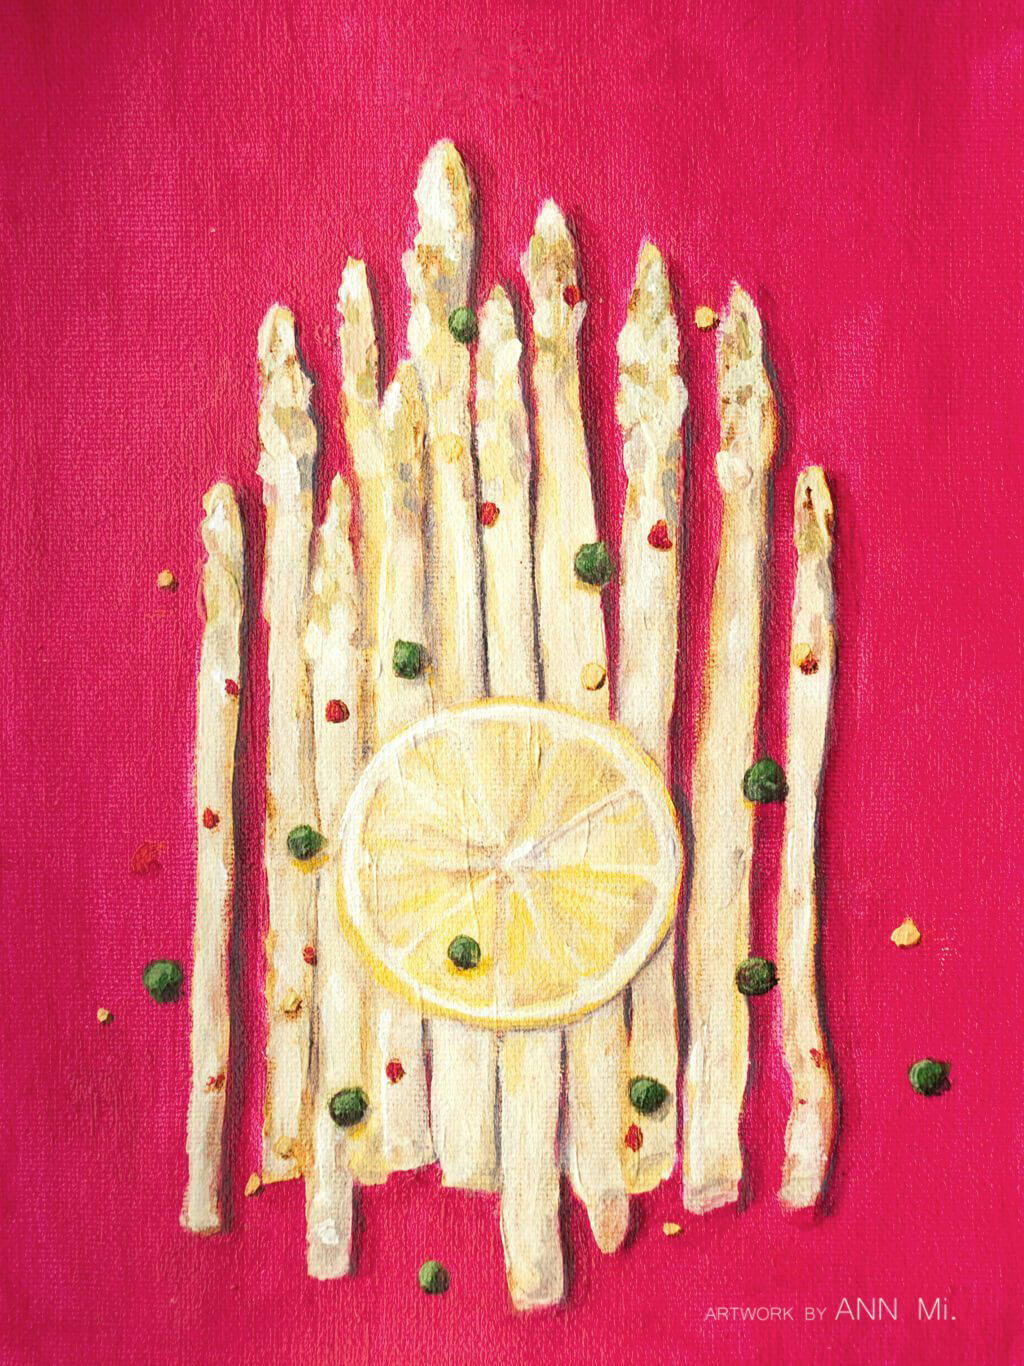 White Asparagus with Lemon Slice, Red Pepper Flakes, and Capers, 2011